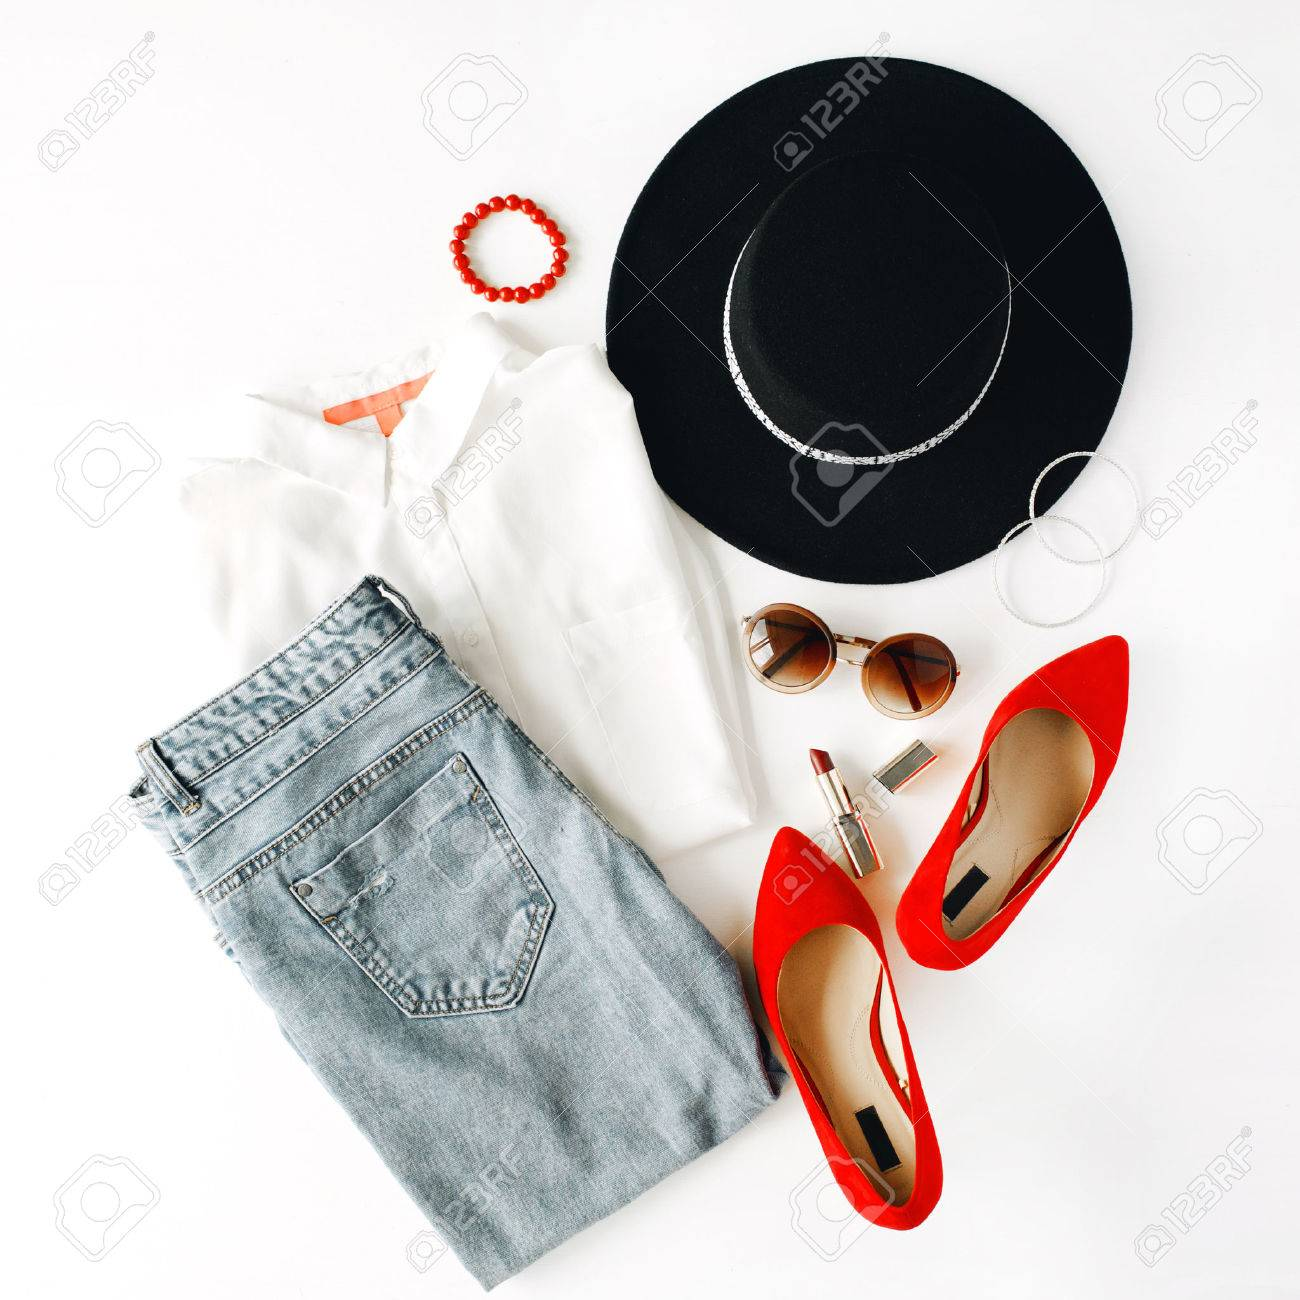 flat lay feminini clothes and accessories collage with blouse, jeans, sunglasses, bracelet, lipstick, red high heel shoes, earrings and hat on white background. - 60890716